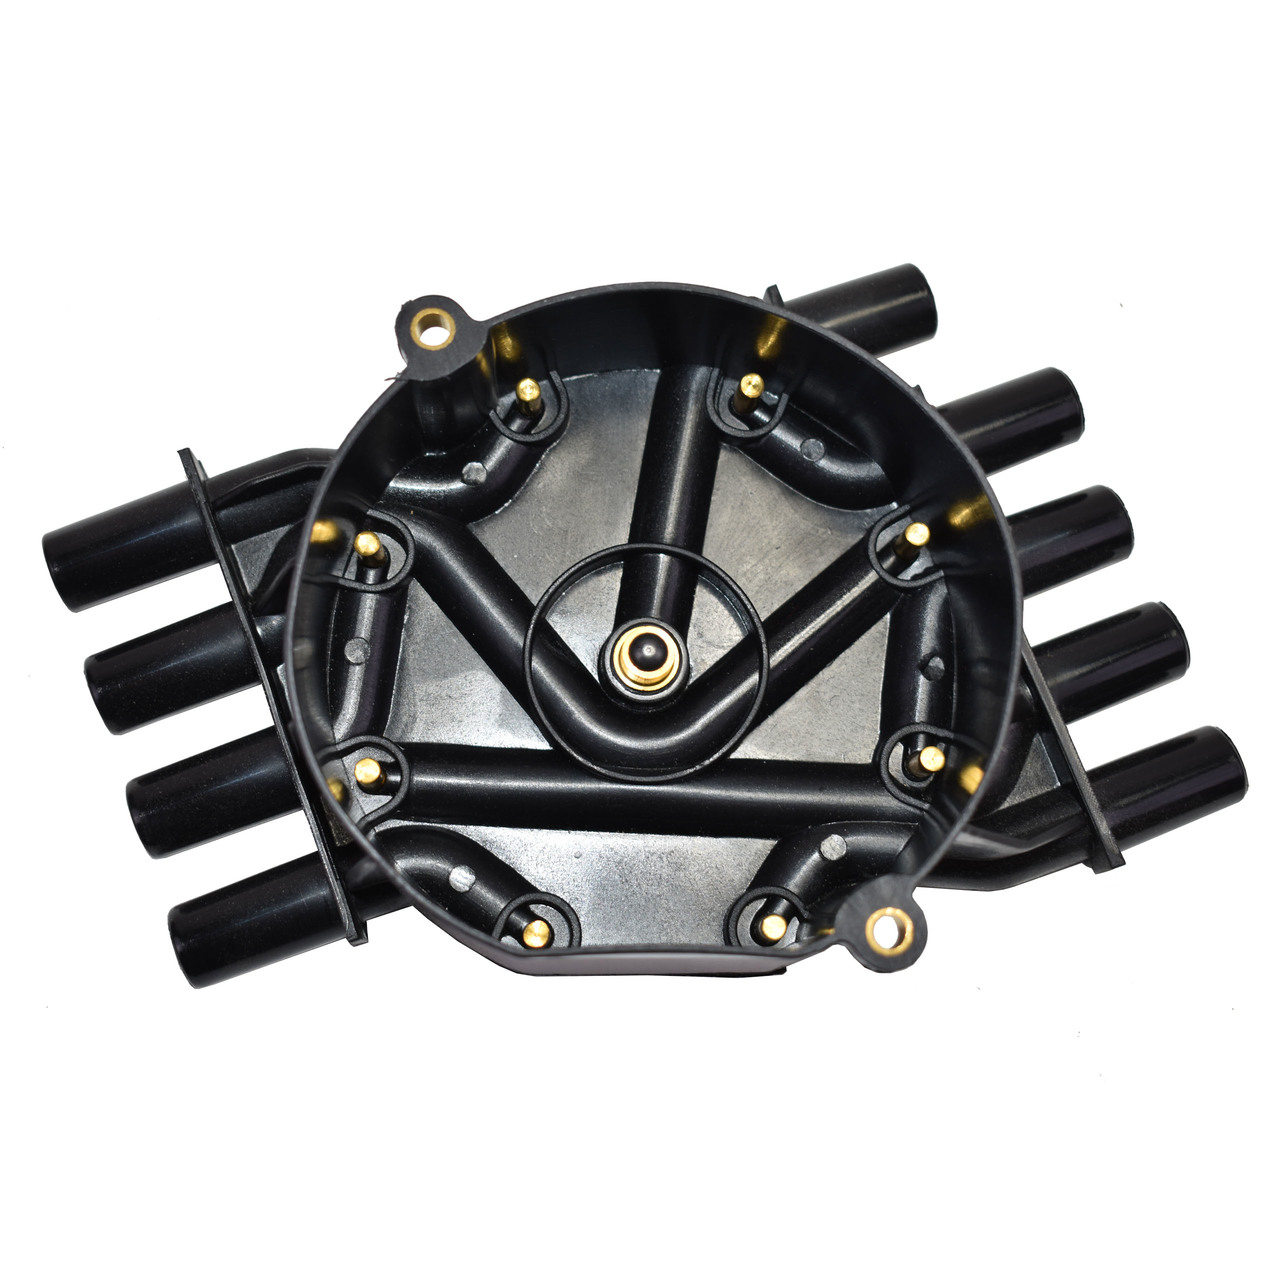 A-Team Performance 8-Cylinder EFI Distributor Cap and Rotor Kit Compatible with GM 454 305 350 Black Cap